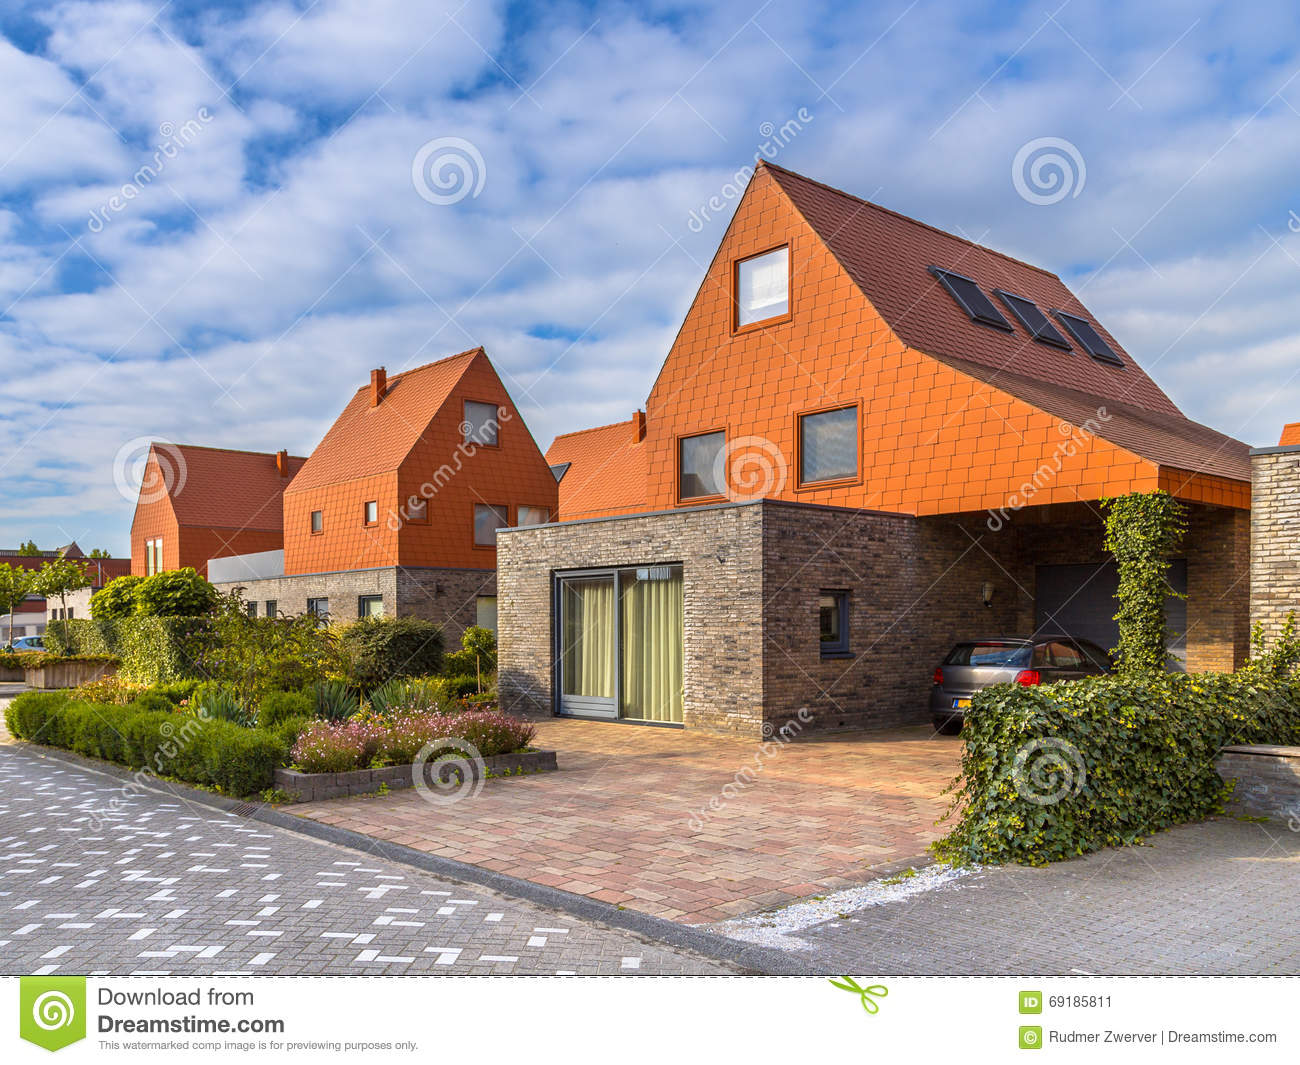 Modern architecture houses with red roof tiles stock image for Immagini case moderne esterni